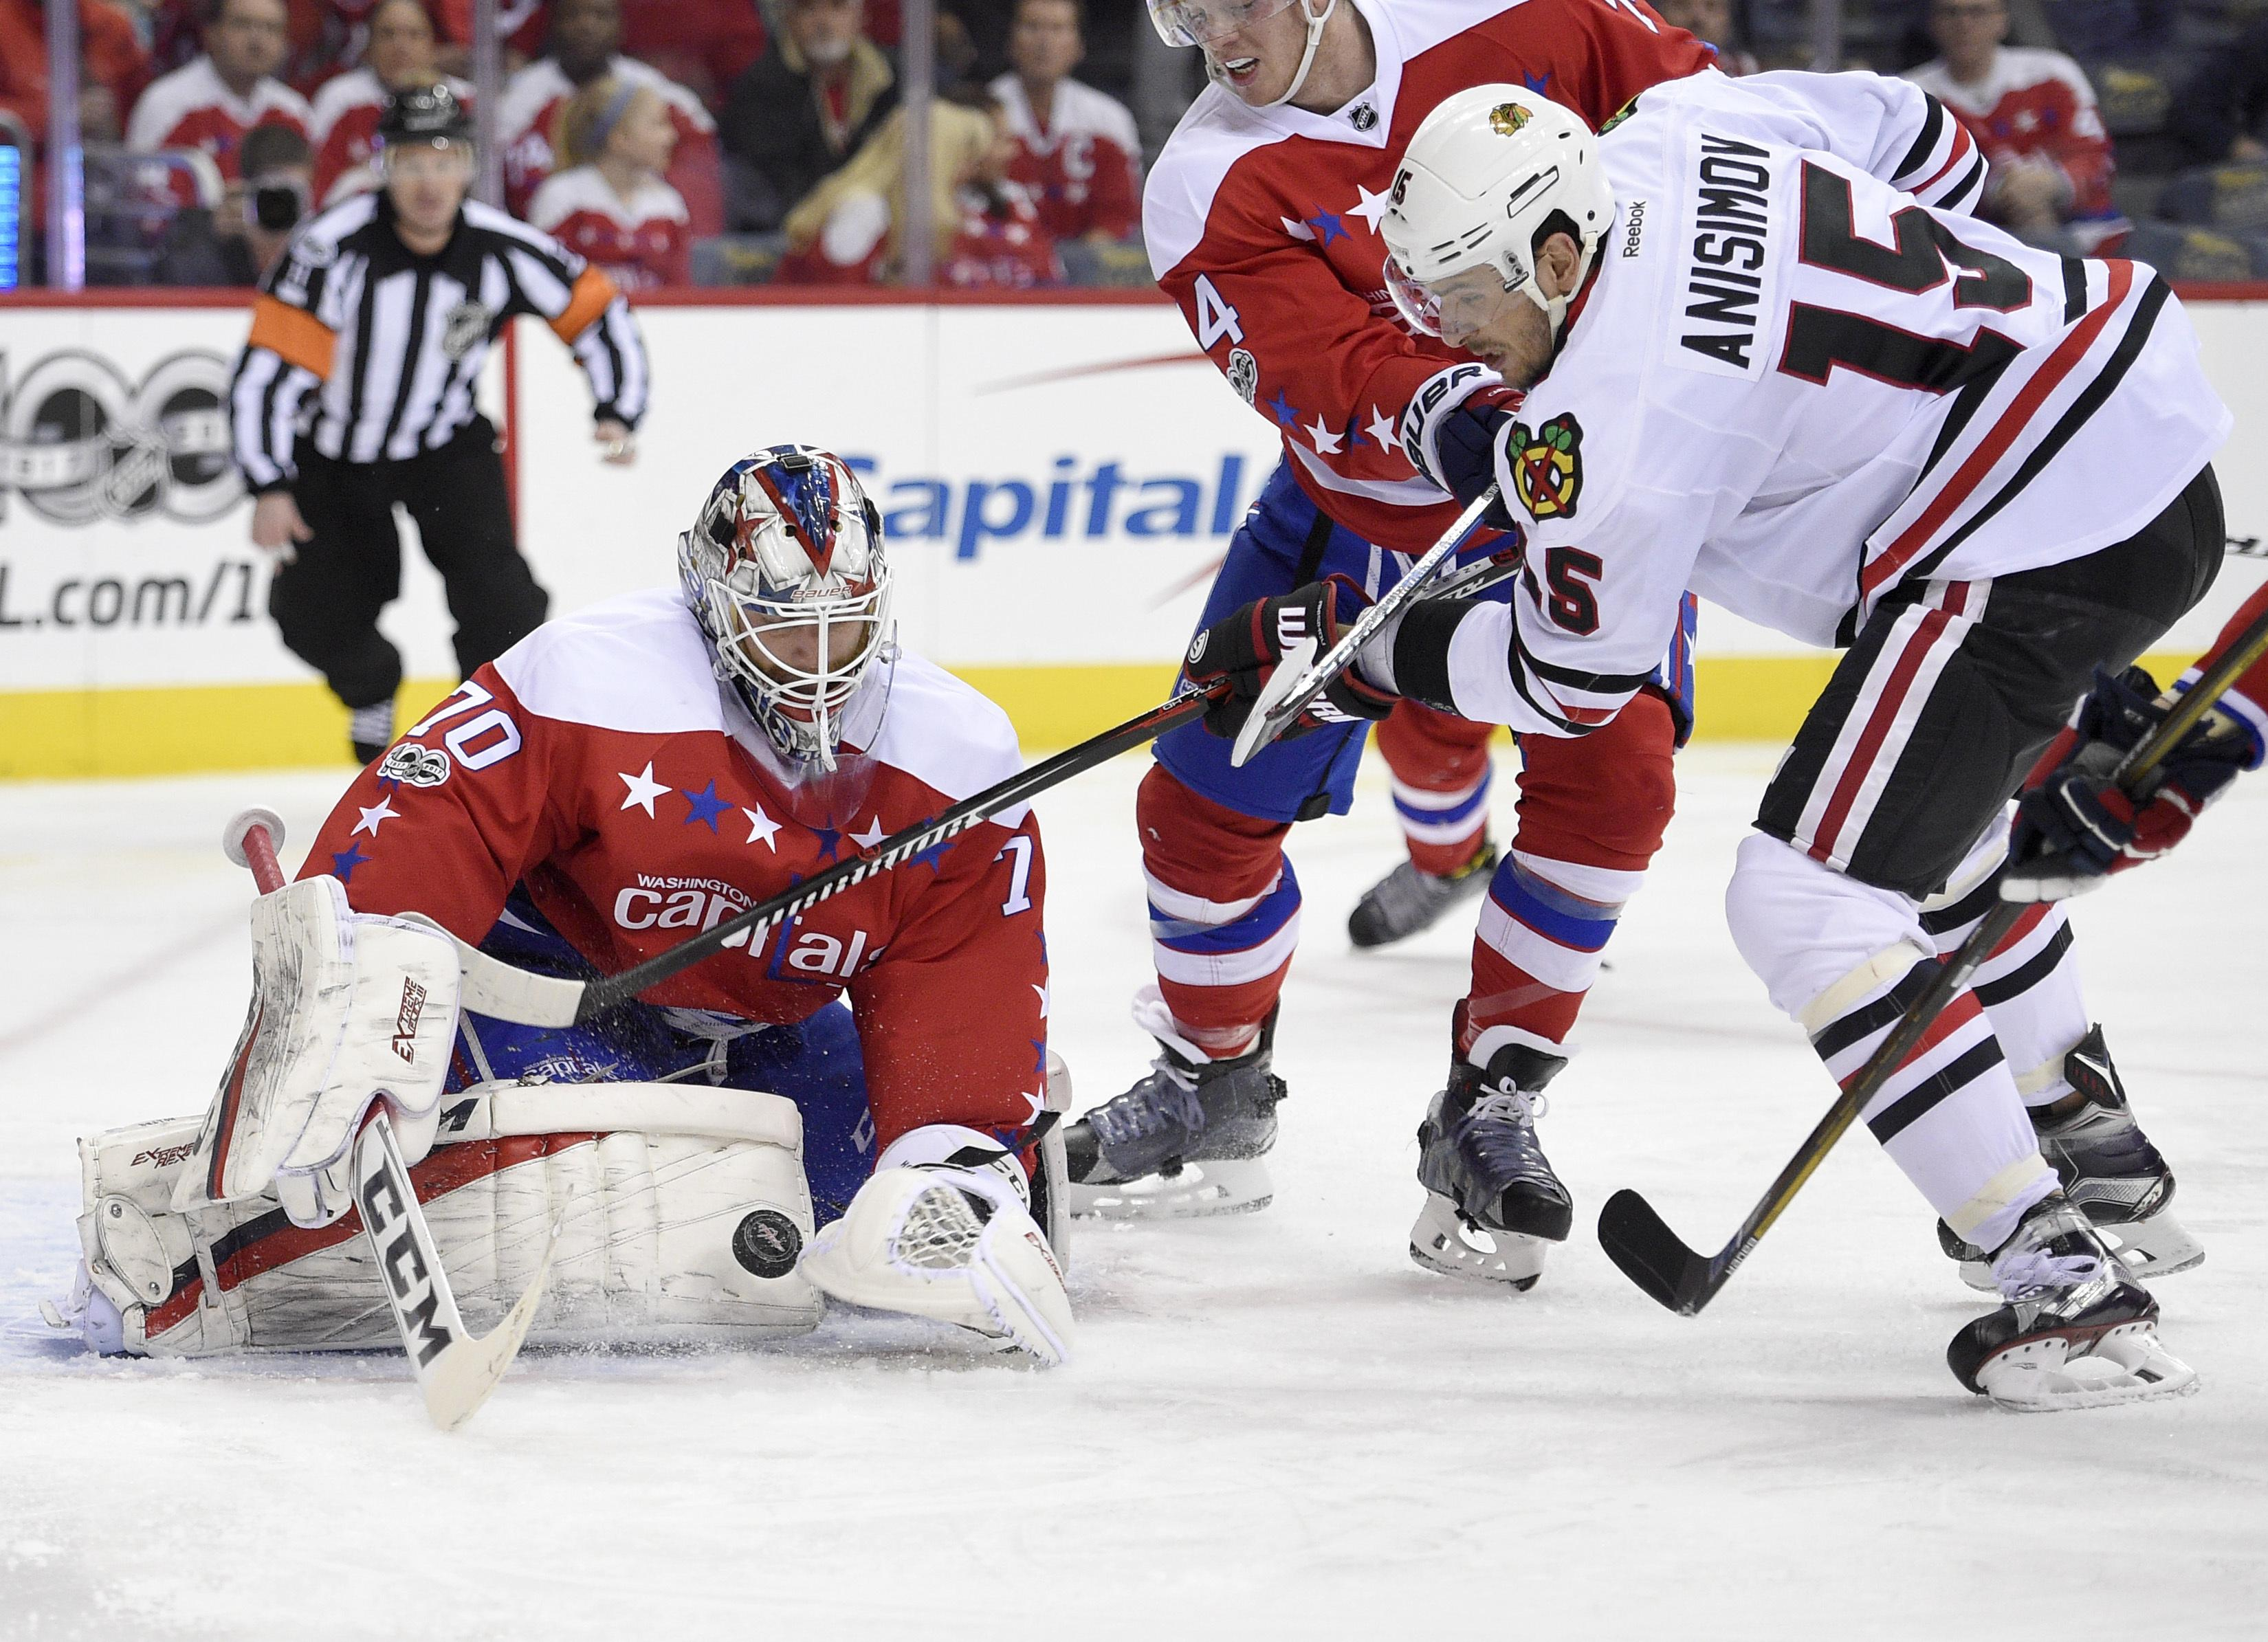 Capitals rout Blackhawks to extend winning streak to 8